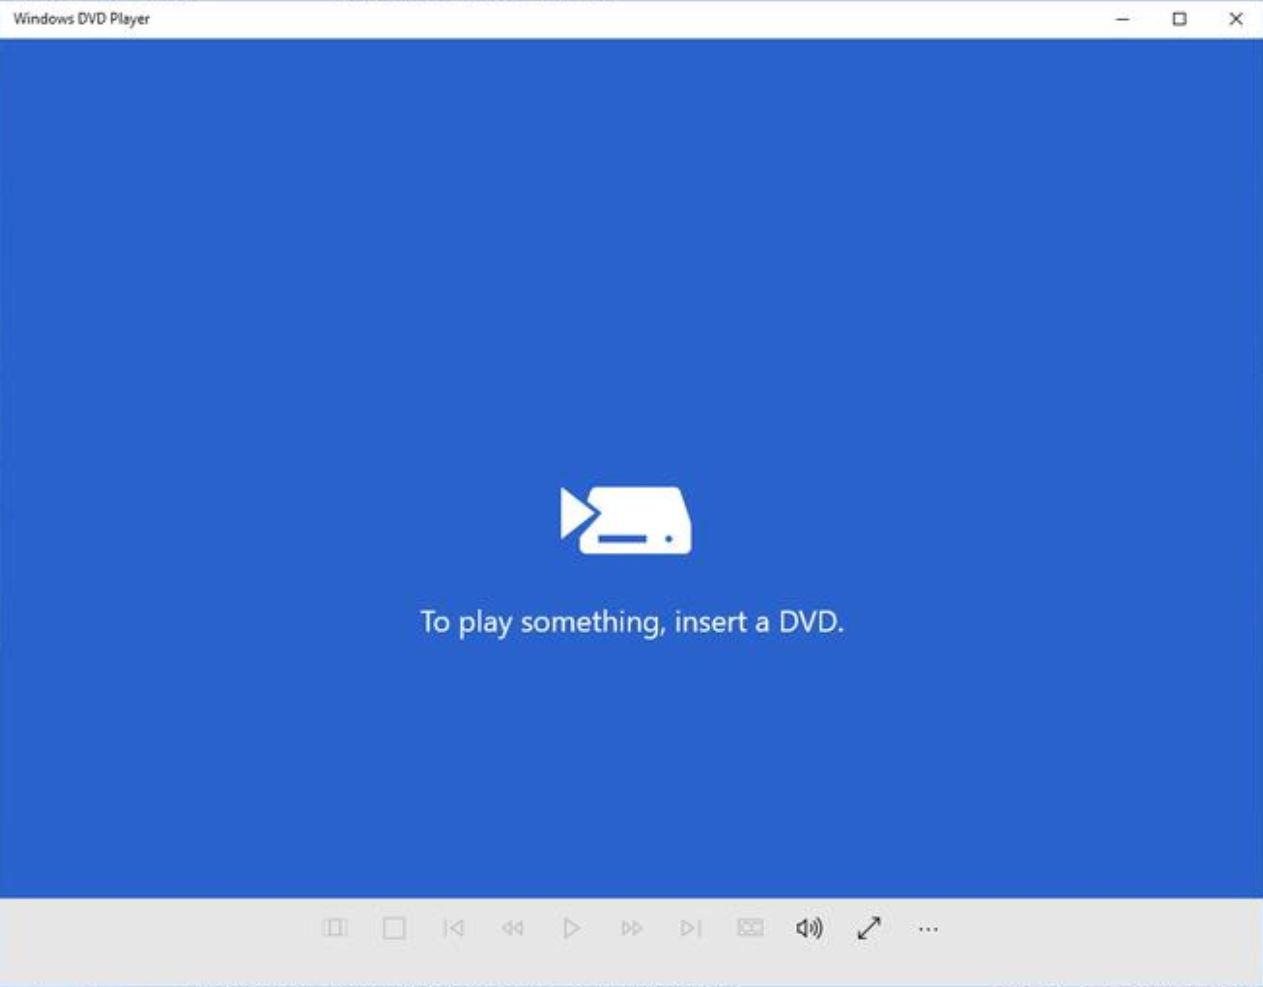 microsoft releases windows dvd player app for windows 10